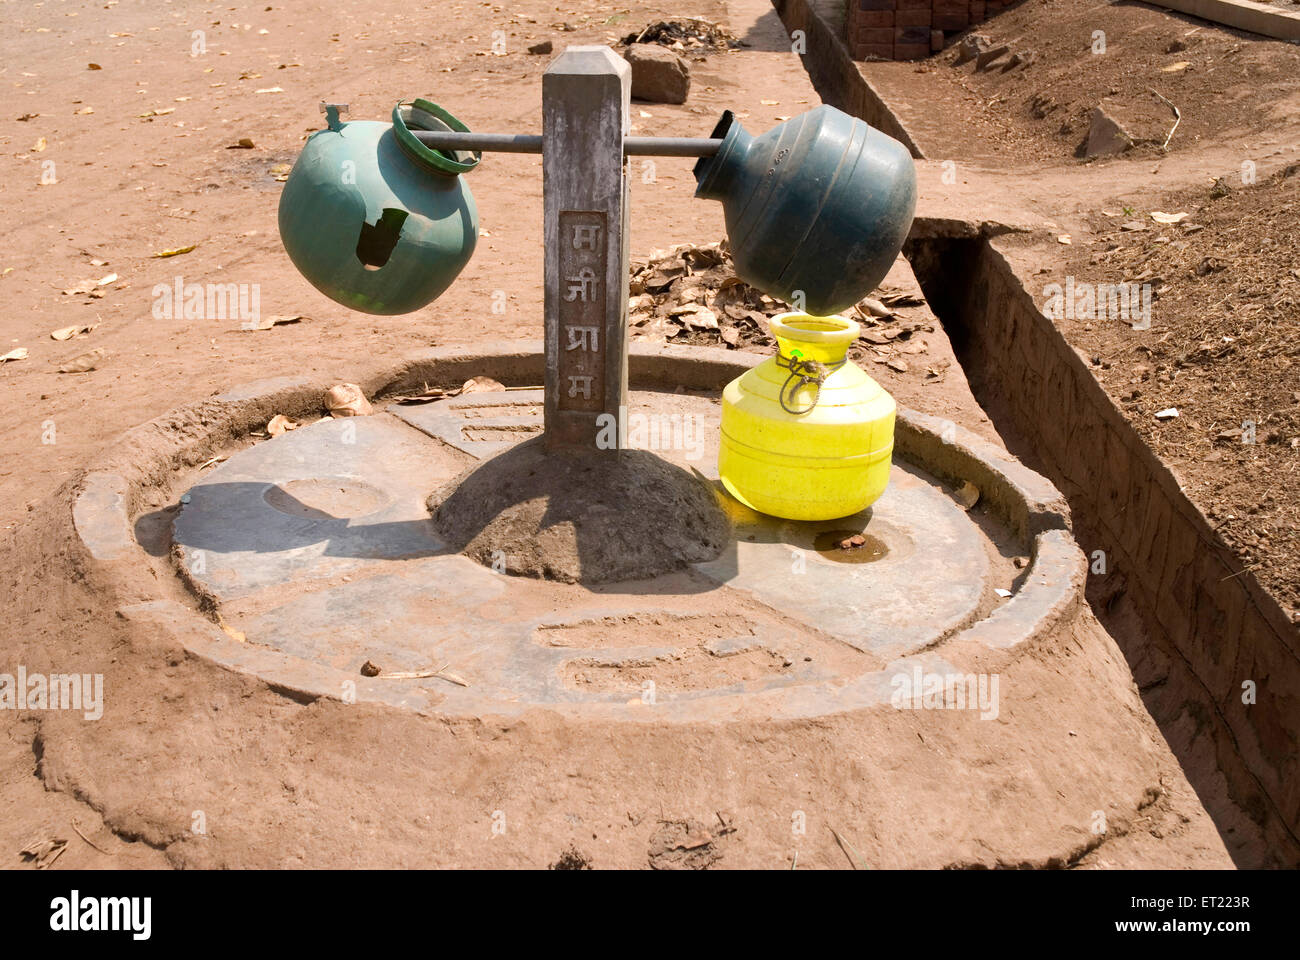 Village water supply ; Khidrapur ; District Kolhapur ; Maharashtra ; India - Stock Image